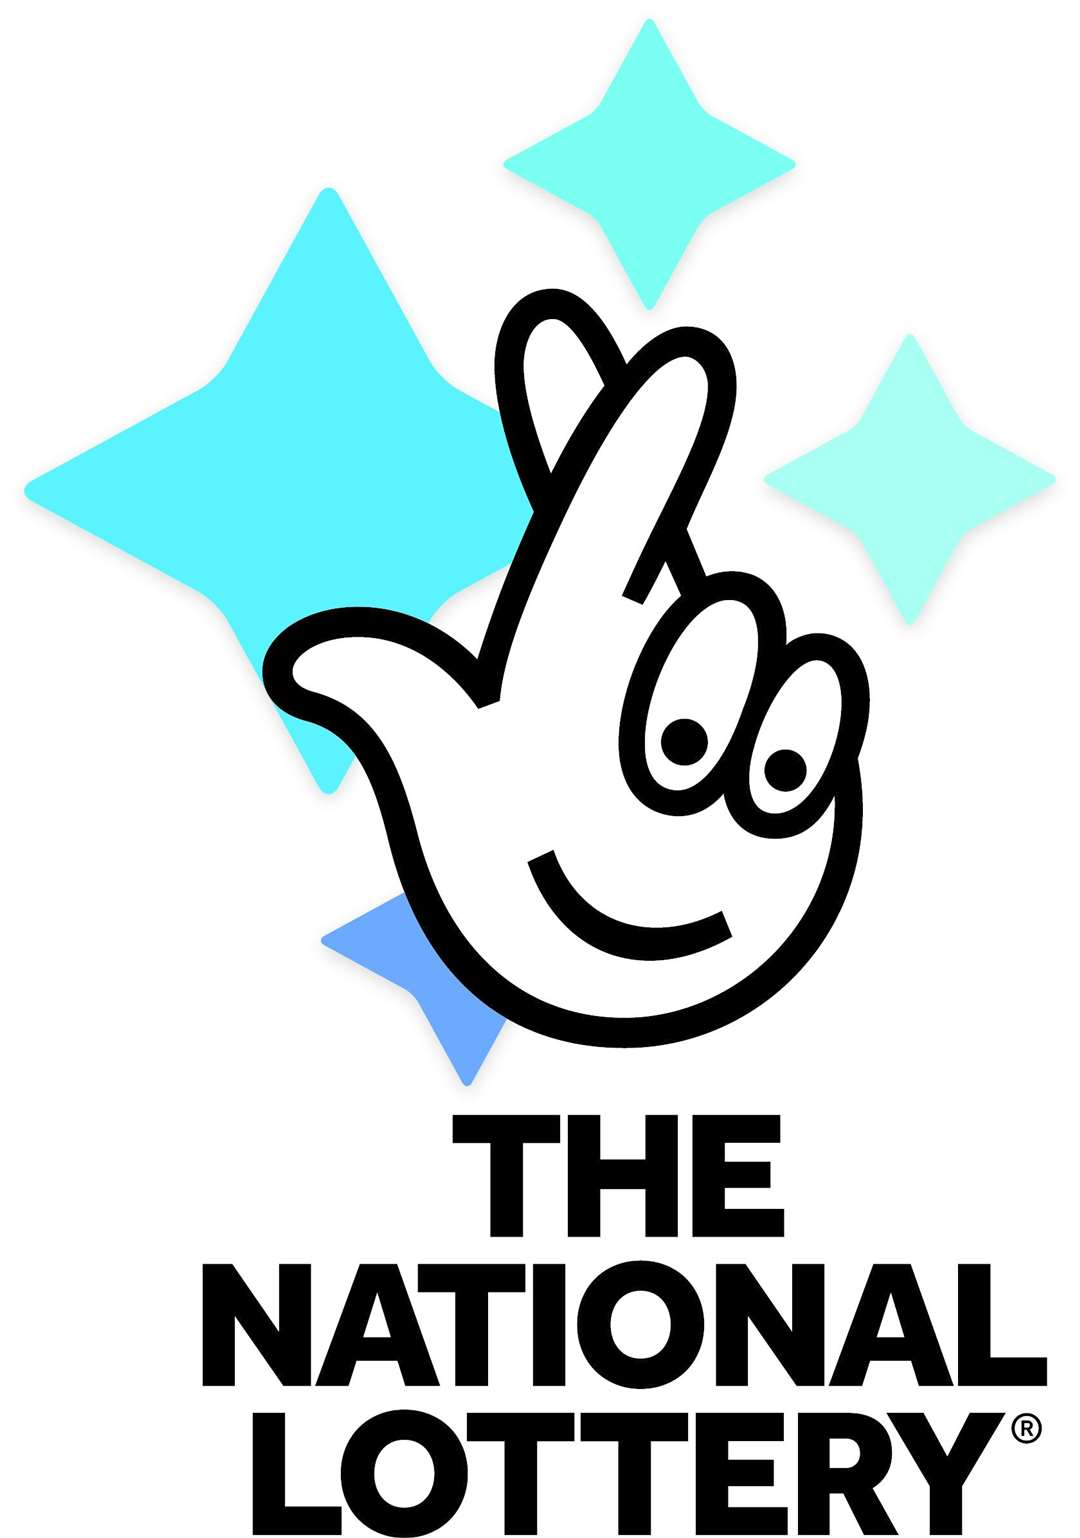 KMG GROUP USE ONLYConditions of Use: Slug: LOTTERY DO 251017Caption: National Lottery logo.Location: DoverCategory: Business & FinanceByline: National LotteryContact Name: Patrick LisoireContact Email: patrick.lisoire@camelotgroup.co.ukContact Phone: 020 7632 5711Uploaded By: Sam LENNONCopyright: National LotteryOriginal Caption: FM4971308 (21042777)